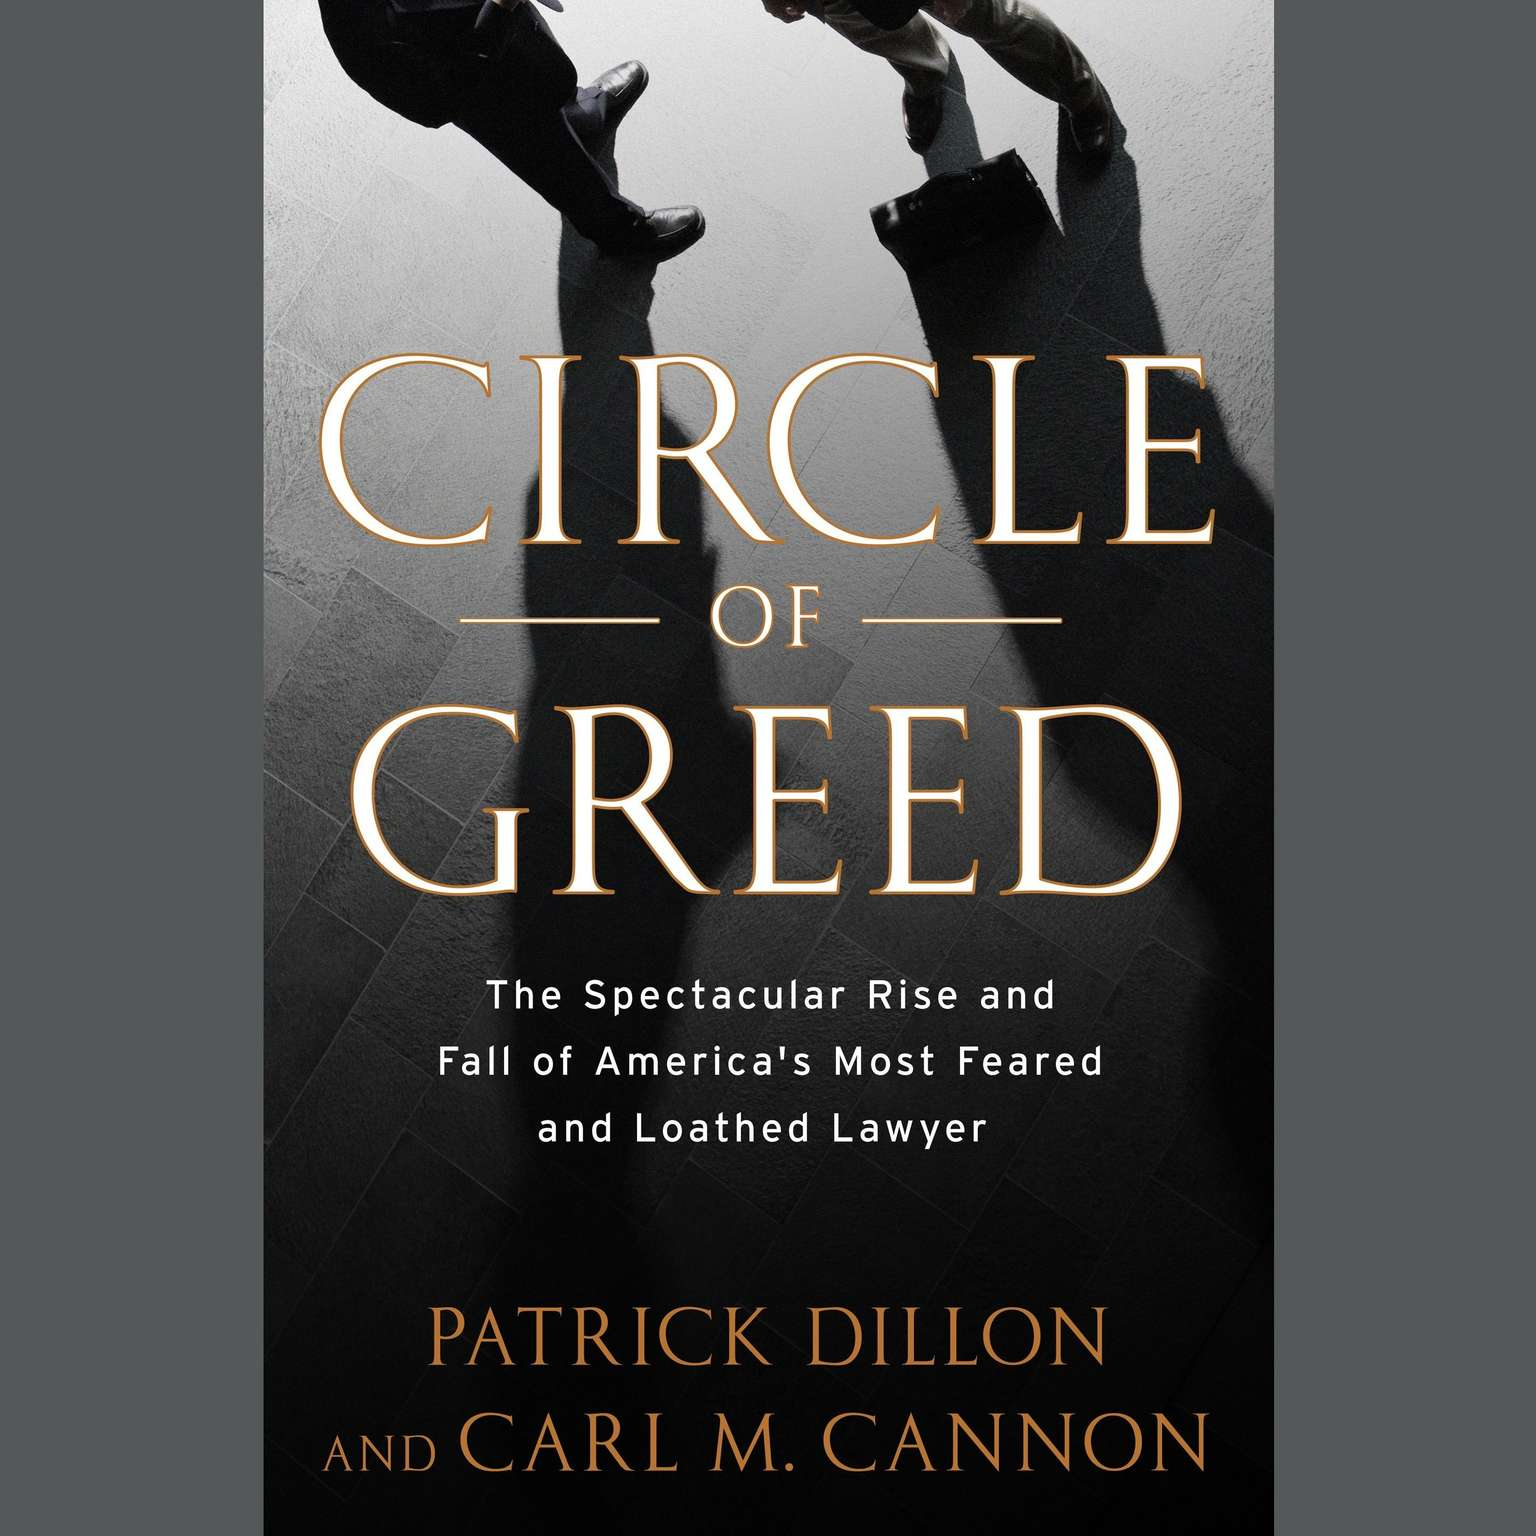 Printable Circle of Greed: The Spectacular Rise and Fall of the Lawyer Who Brought Corporate America to Its Knees Audiobook Cover Art